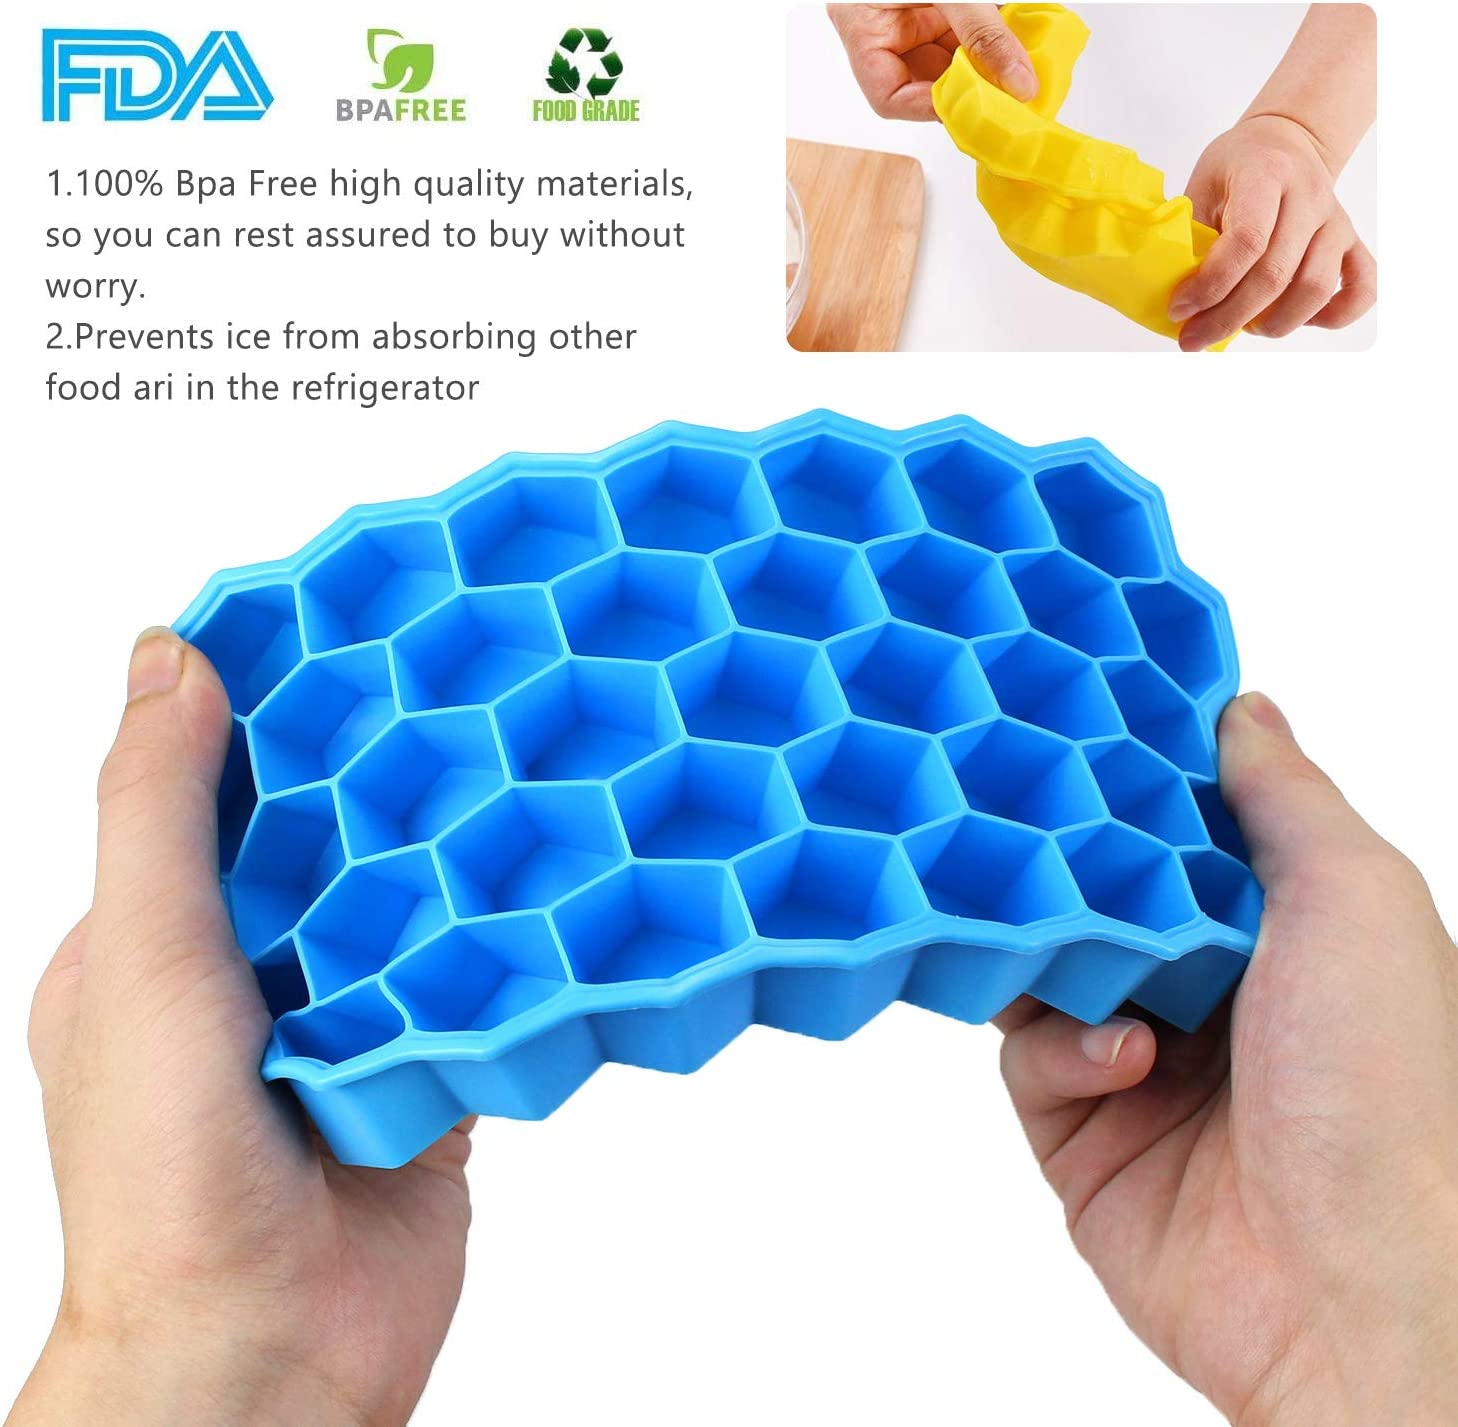 2 Pcs Ice Cube Mould with 37 Ice Cubes Molds and Lid Penobon Silicone Ice Cube Tray 2+1 Pack Blue+Green+Coffee 1 Pc 160 Mini Small Ice Cube Tray